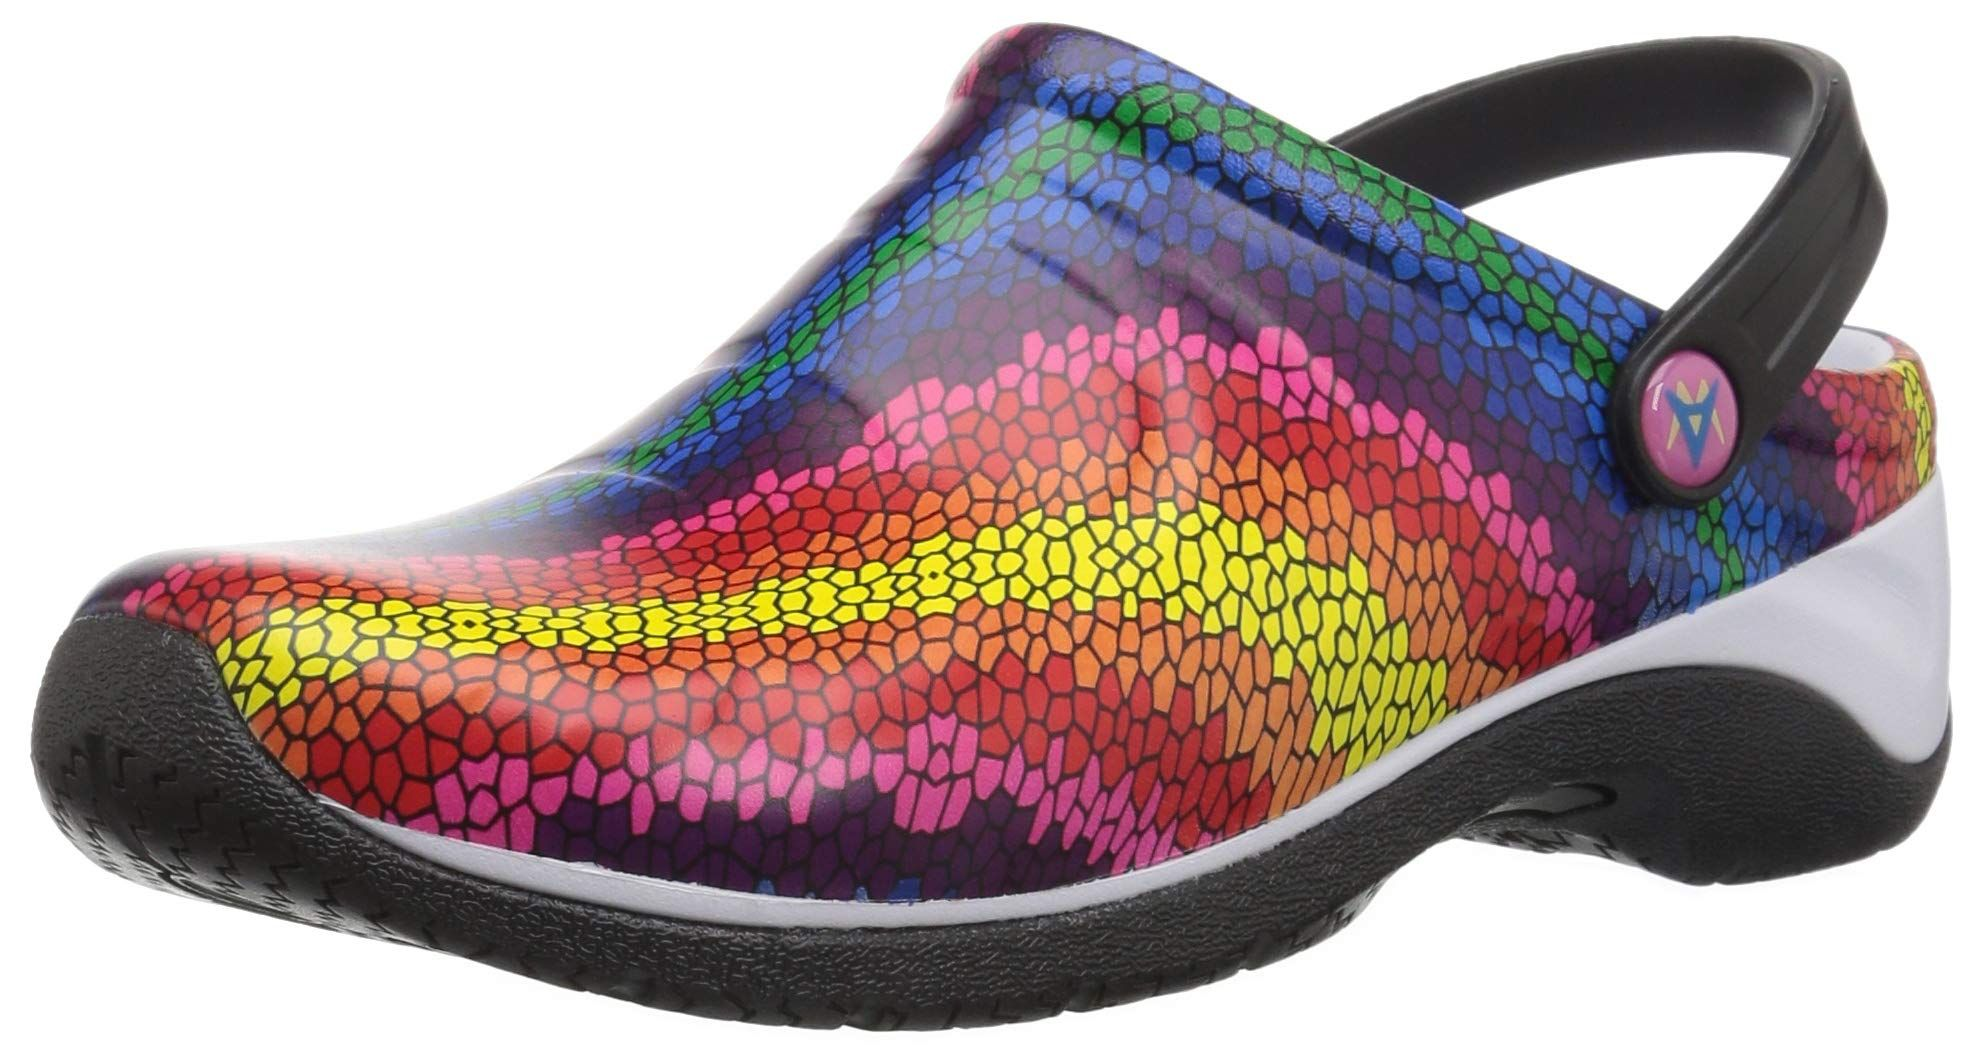 Anywear Women's Zone Medical Professional Shoe, Stained